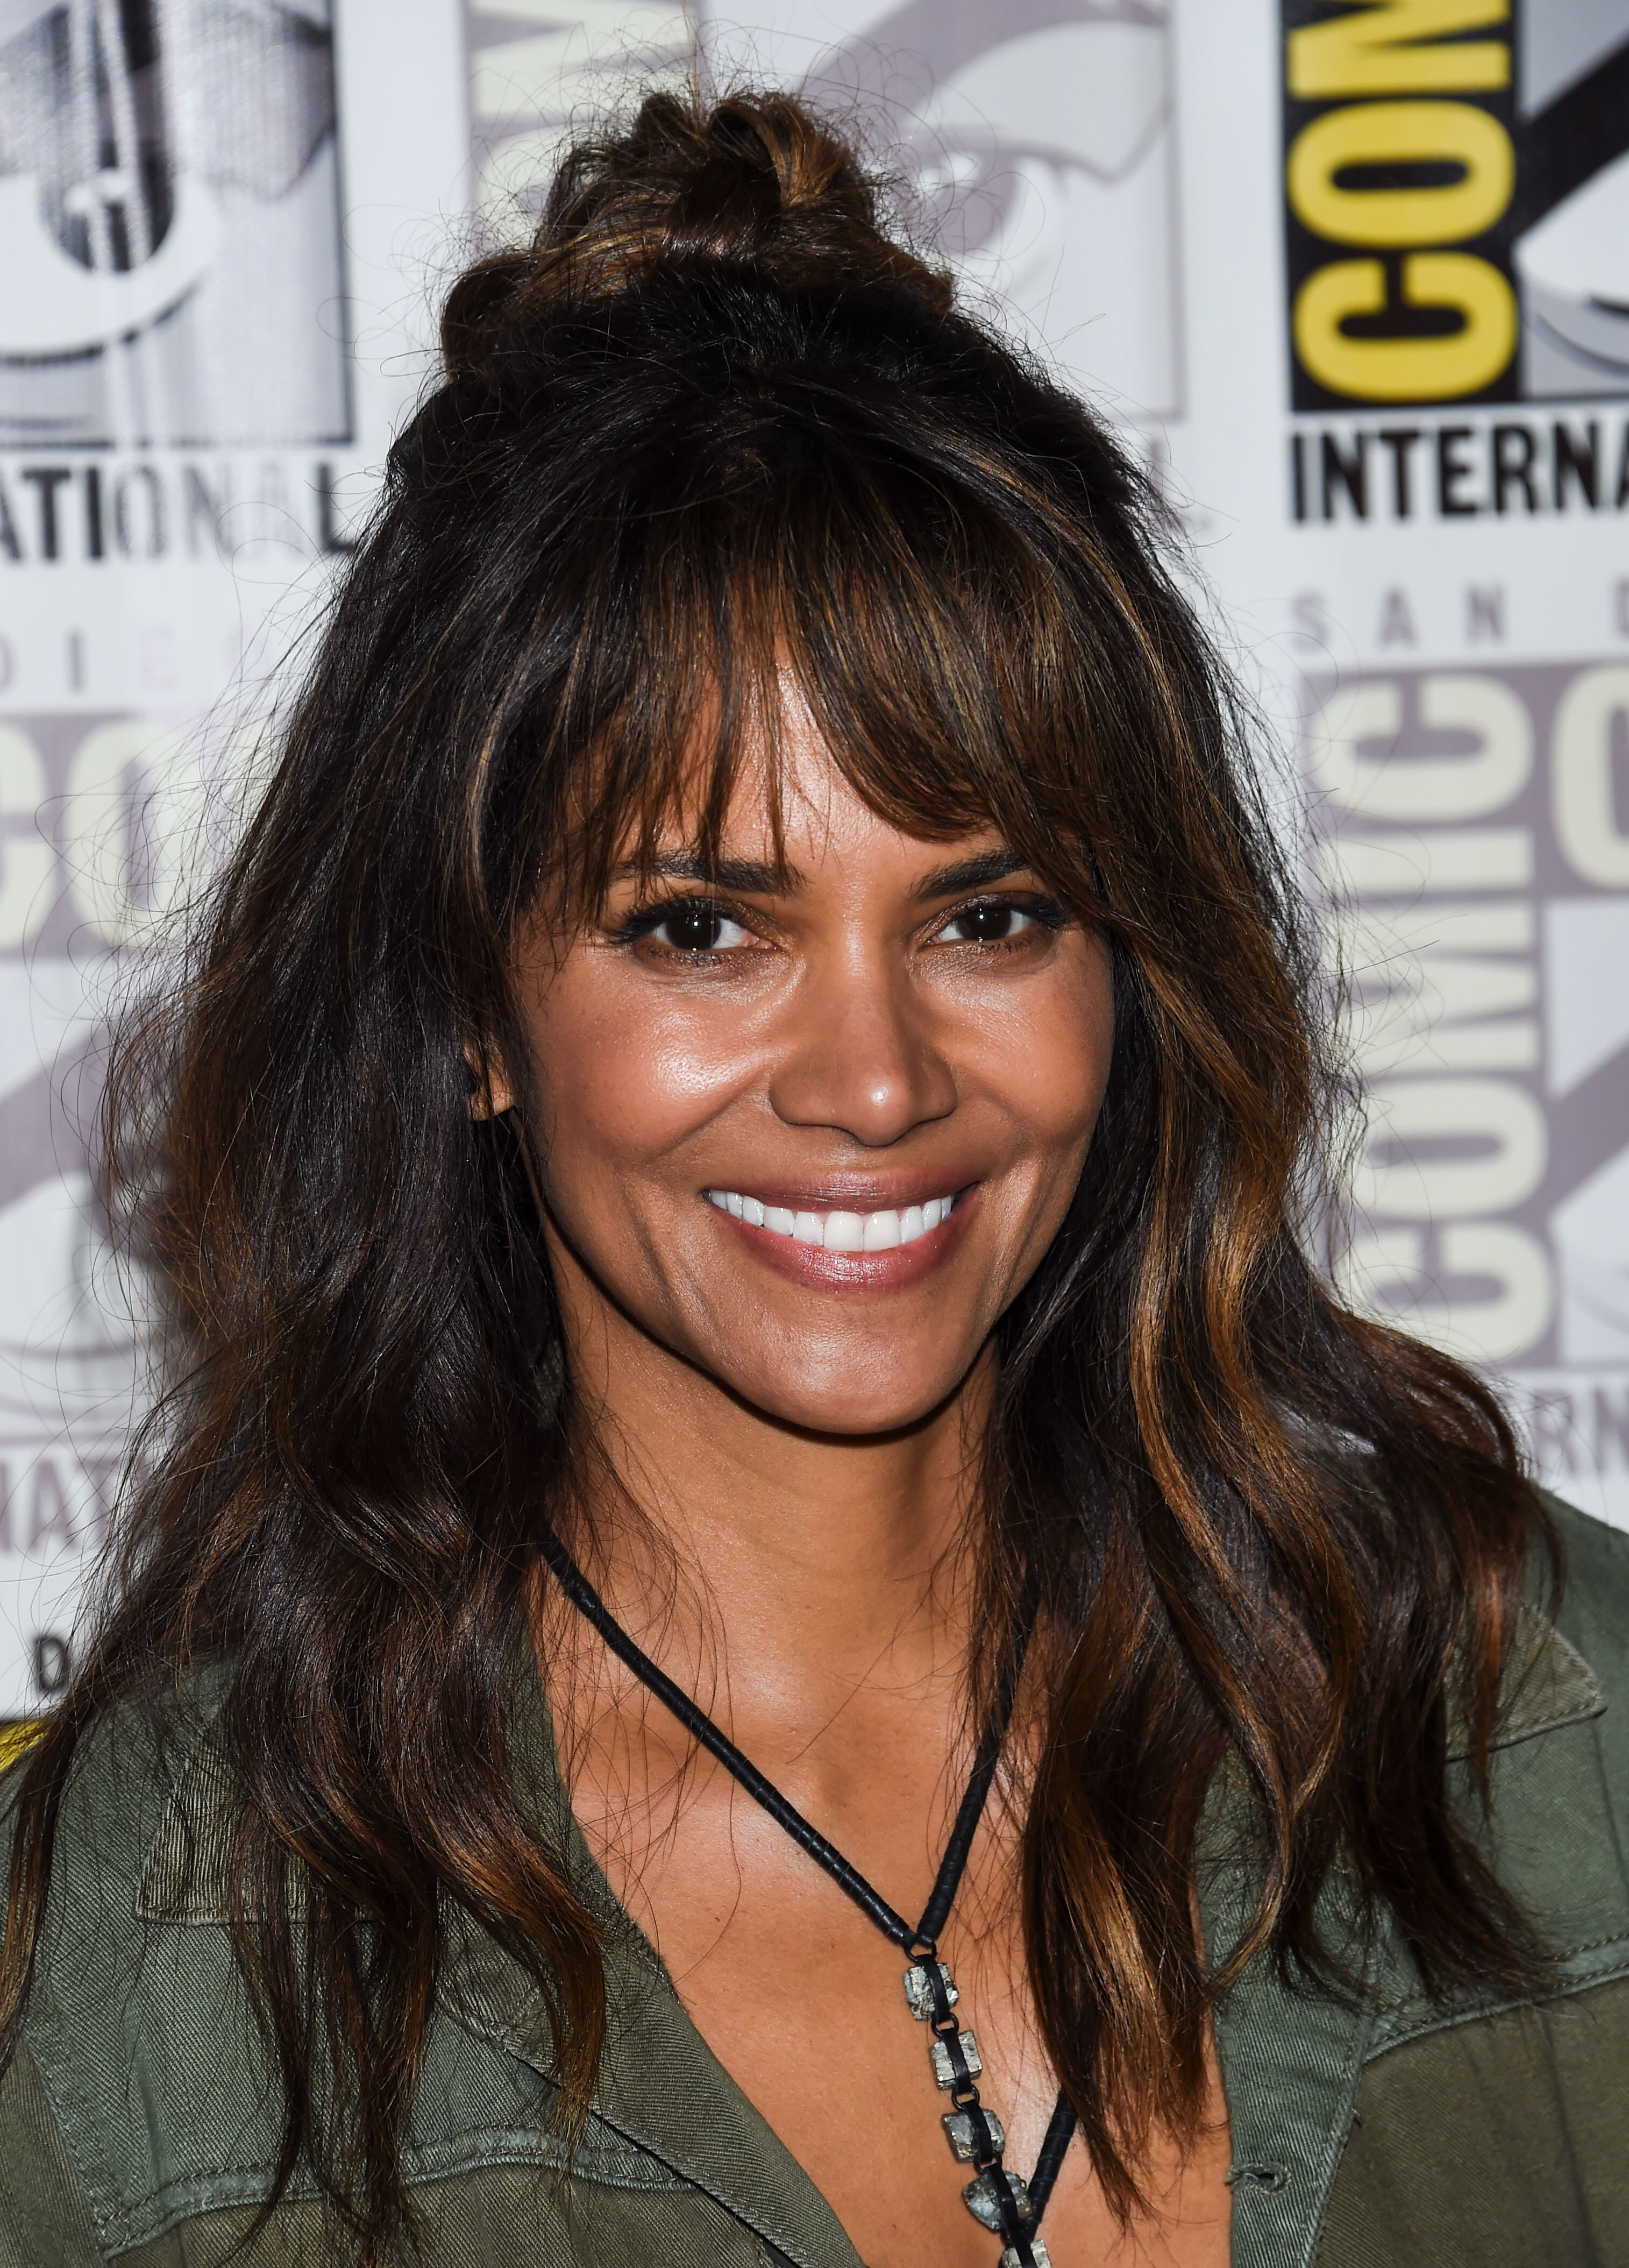 Celebrities arrive at 'Kingsman: The Golden Circle' Press Line during 2017 Comic-Con International on July 20, 2017 in San Diego, California, United States <P> Pictured: Halle Berry <B>Ref: SPL1542286  200717  </B><BR/> Picture by: Splash News<BR/> </P><P> <B>Splash News and Pictures</B><BR/> Los Angeles:310-821-2666<BR/> New York:212-619-2666<BR/> London:870-934-2666<BR/> <span id=